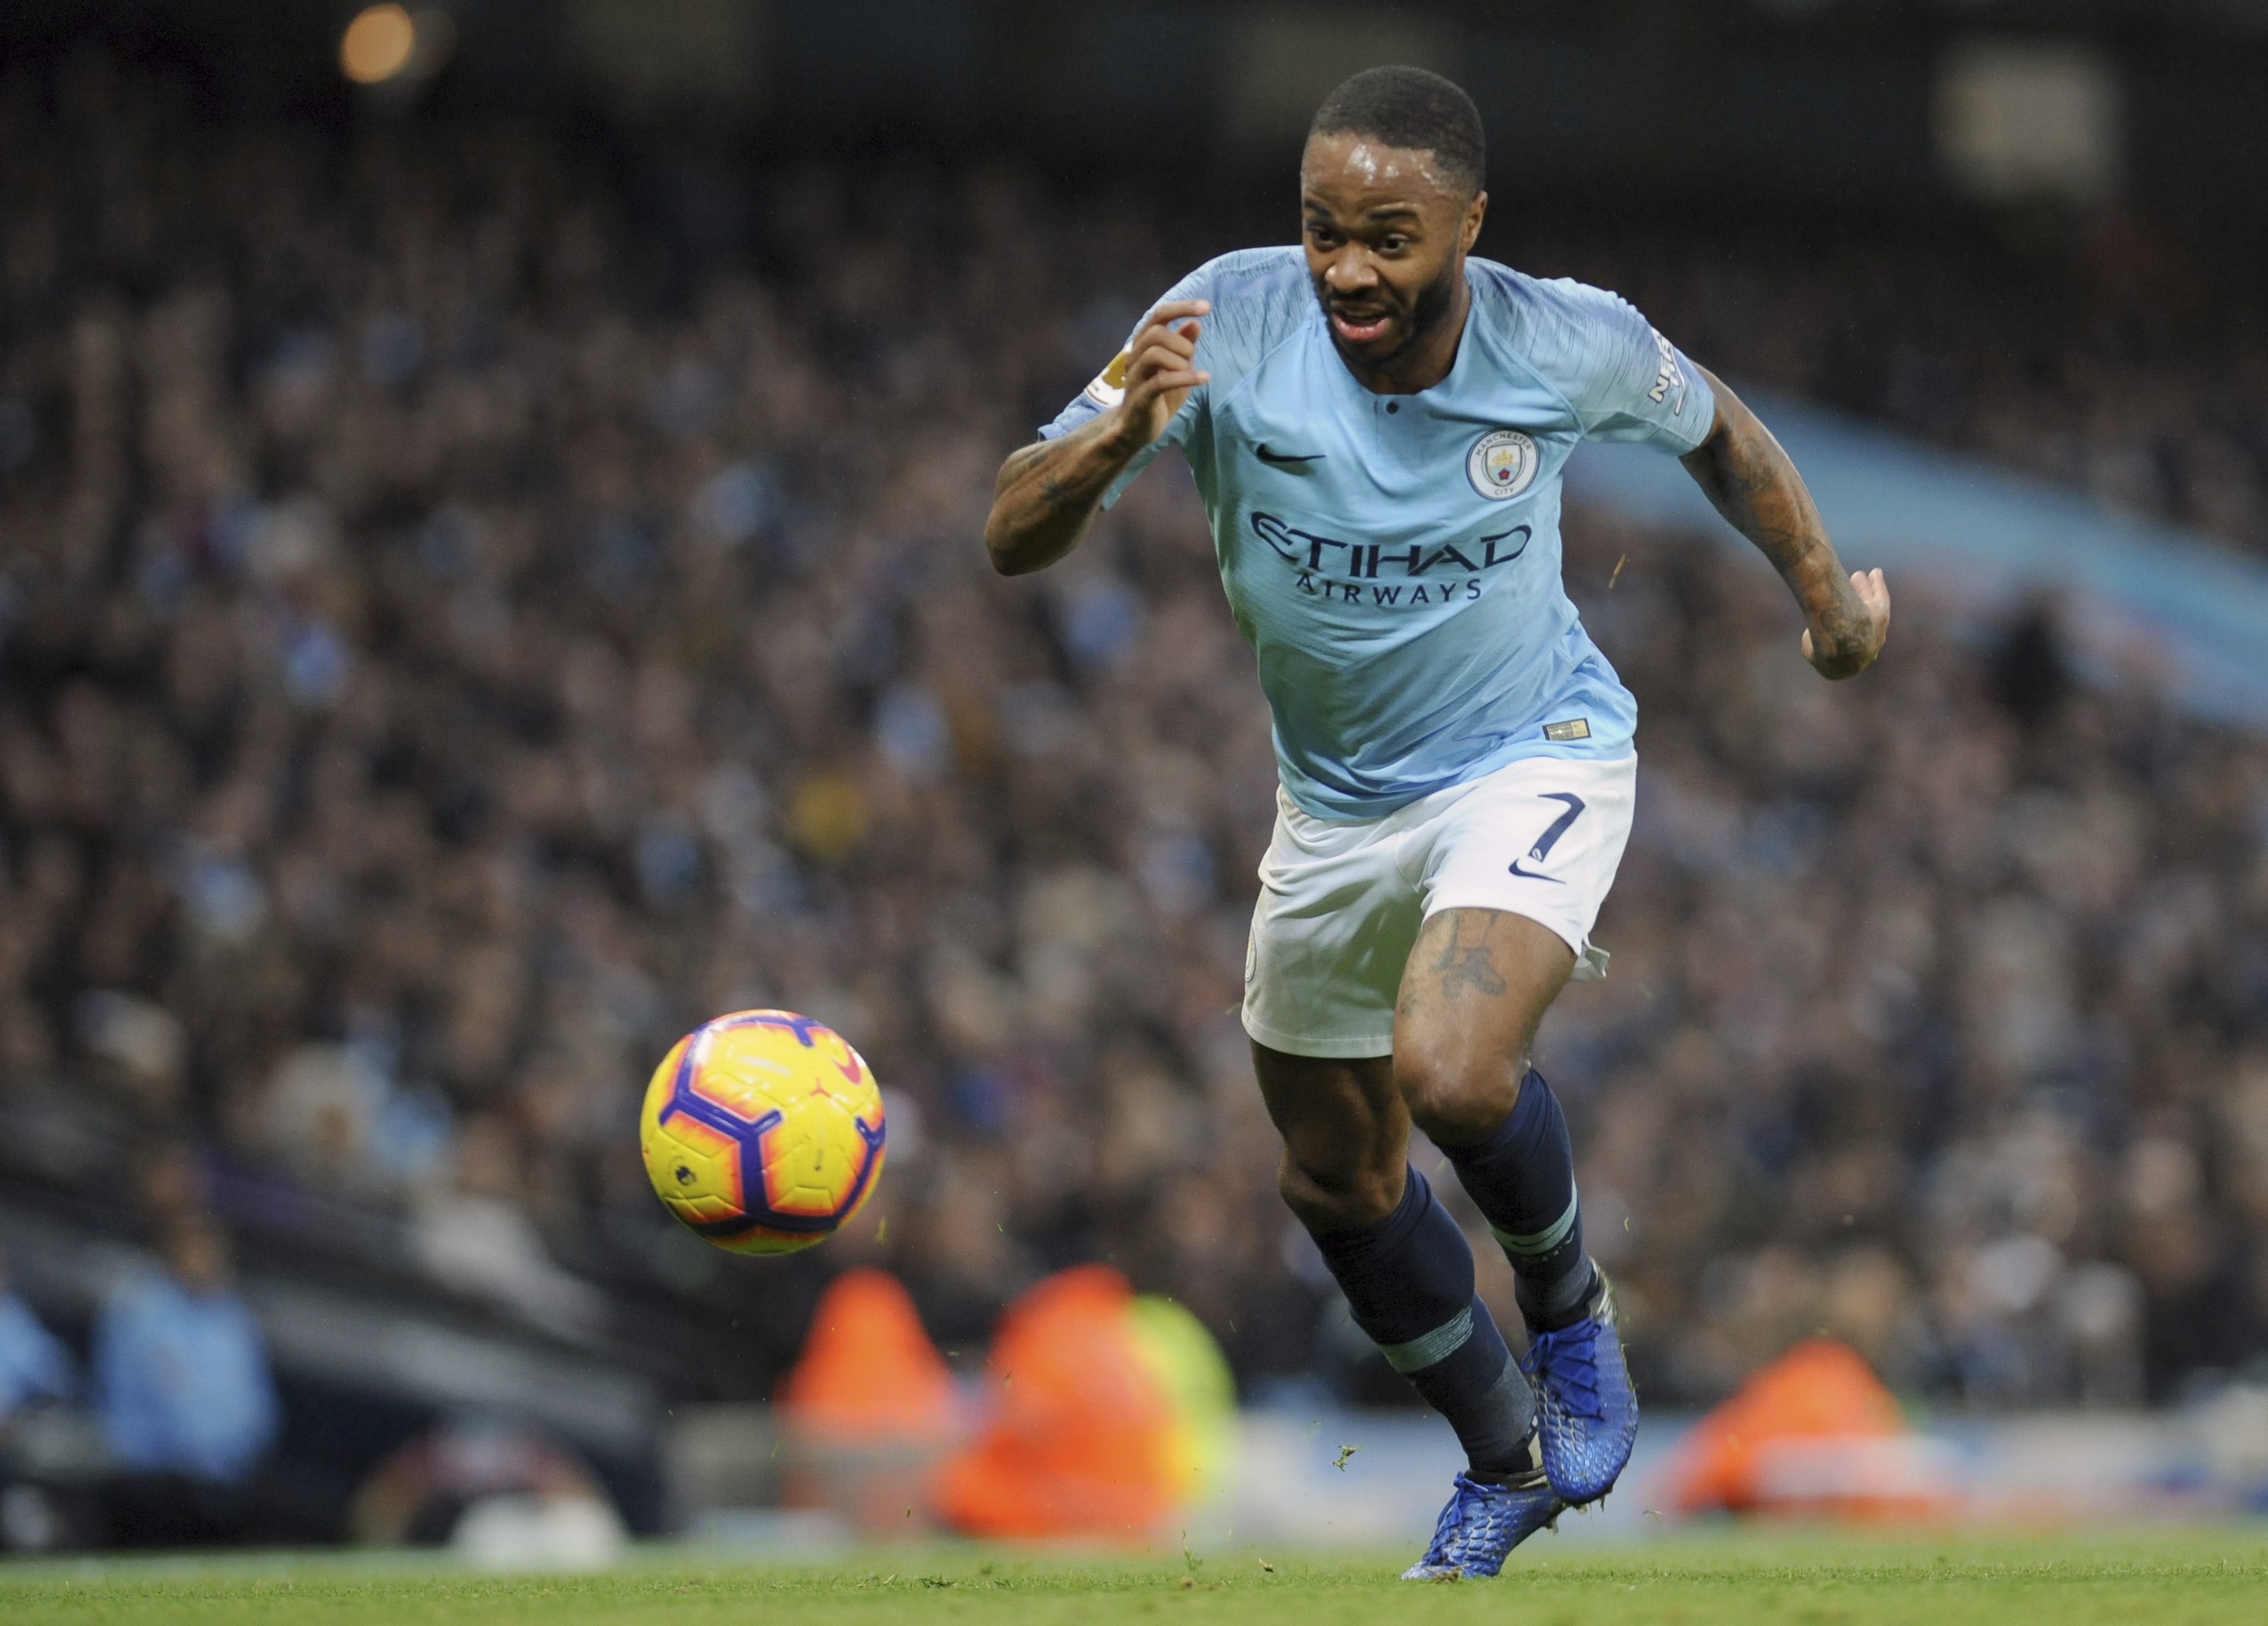 Sterling the scourge of Bournemouth again as Man City wins